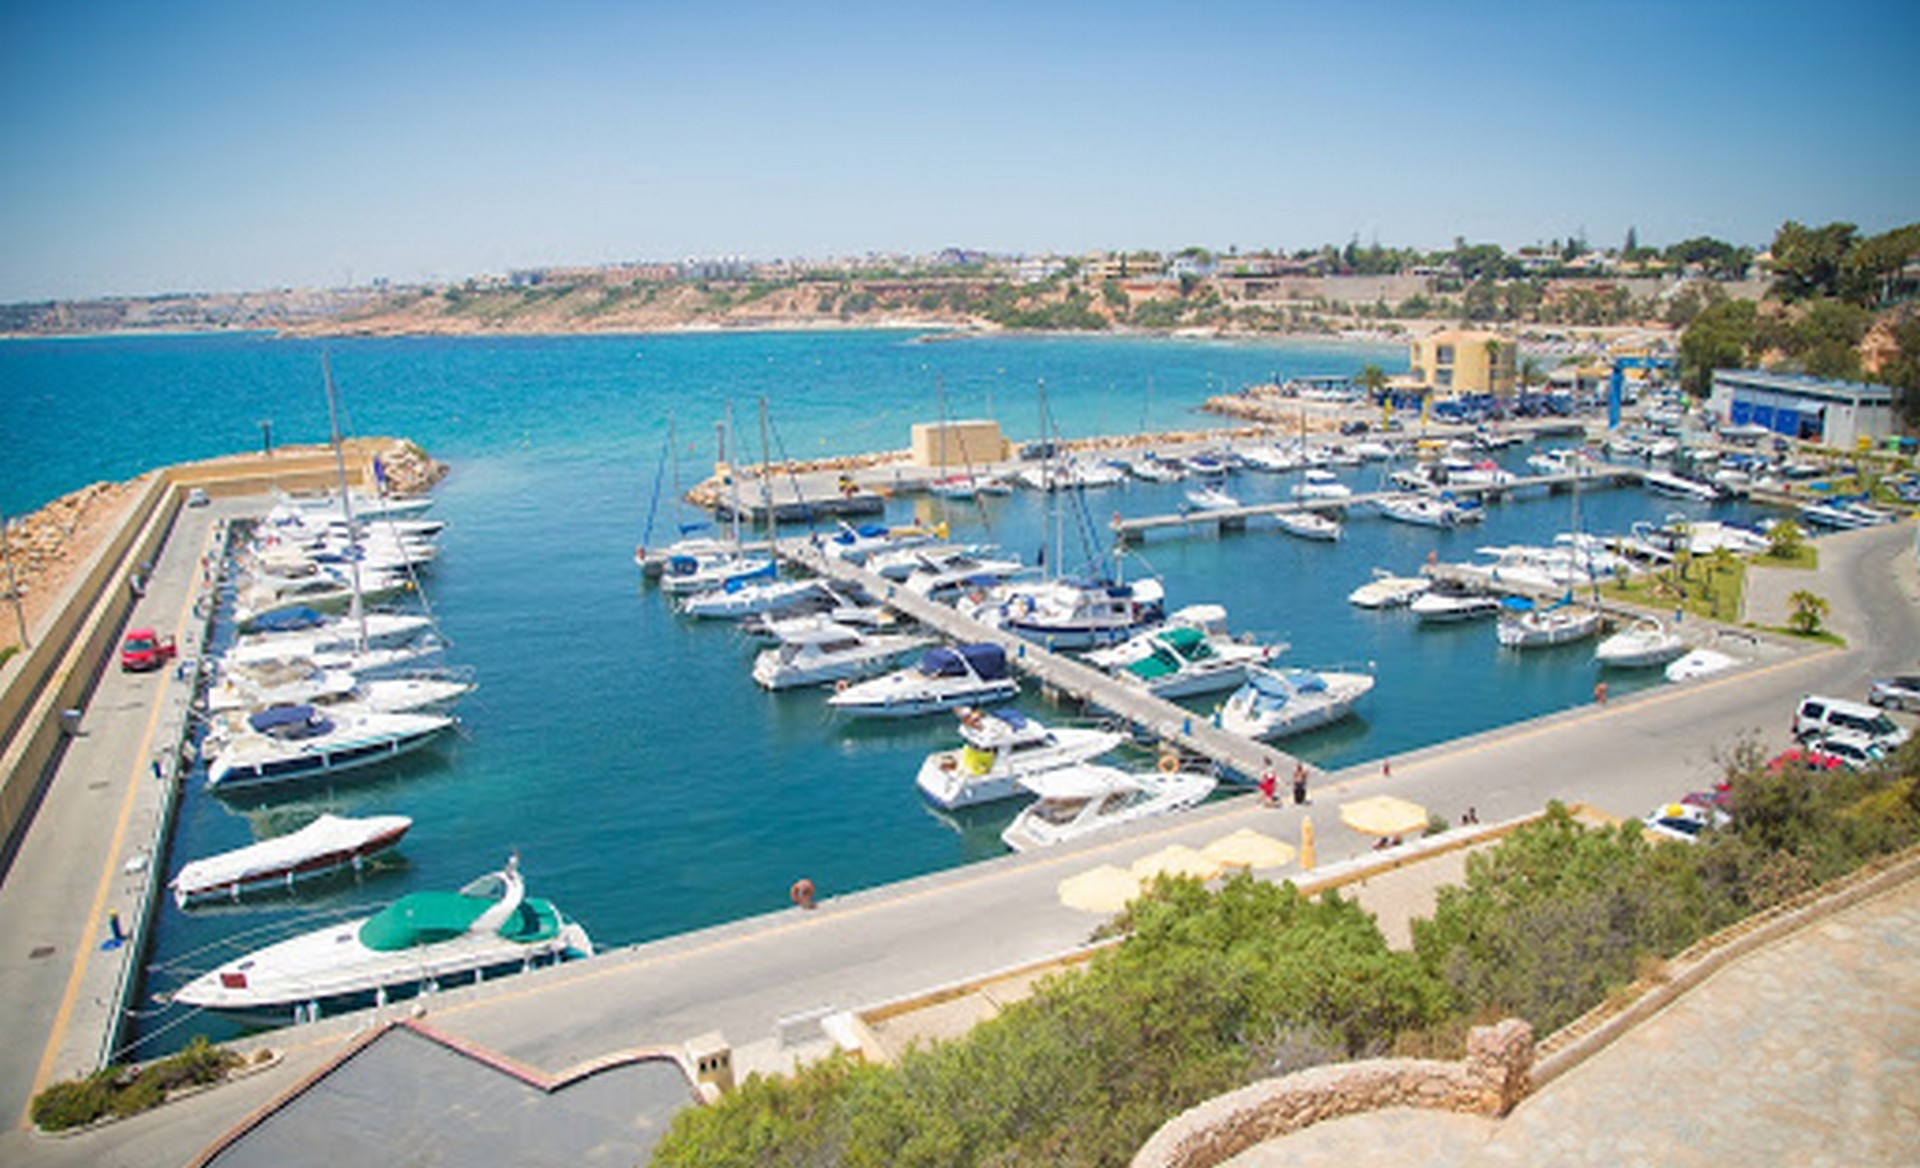 Cabo Roig haven